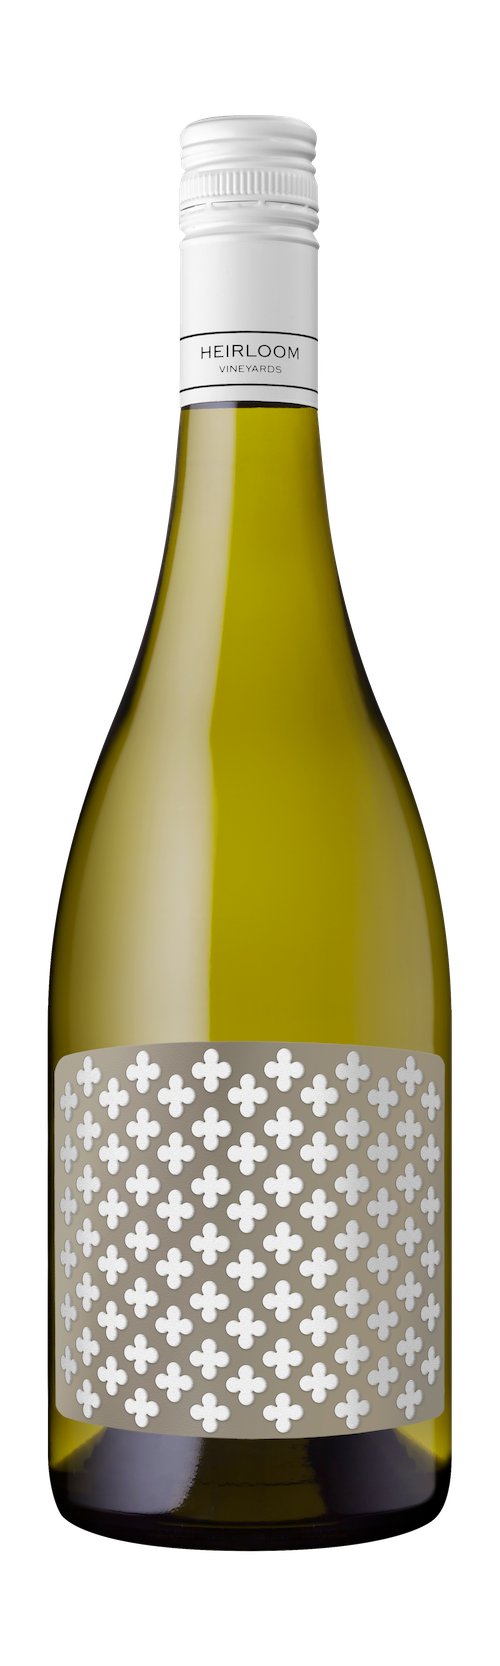 Adelaide Hills Private Selection Chardonnay 2017